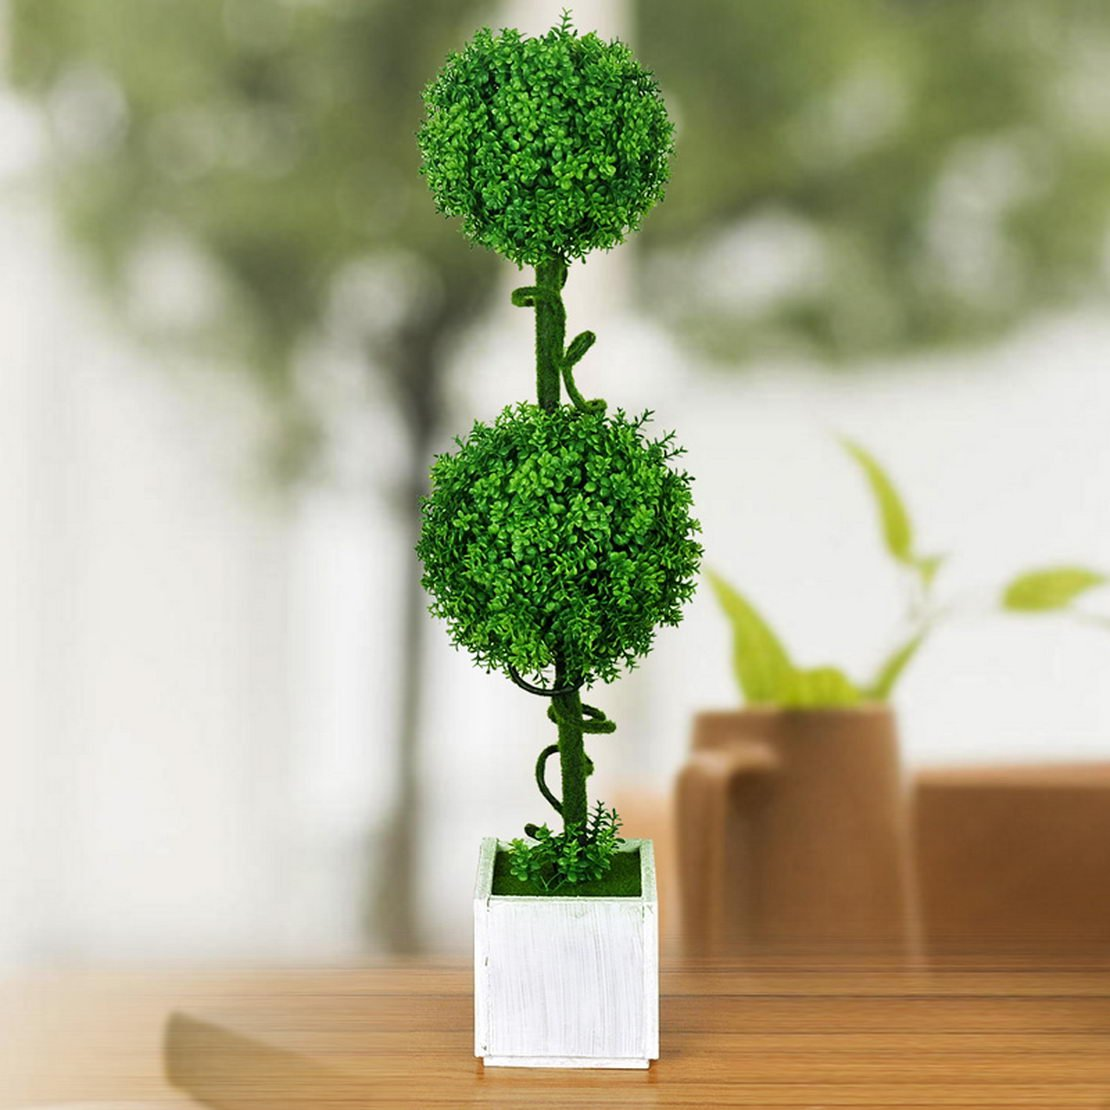 donfohy Rural countryside home decorations artificial plants potted bonsai trees small living room table ornaments